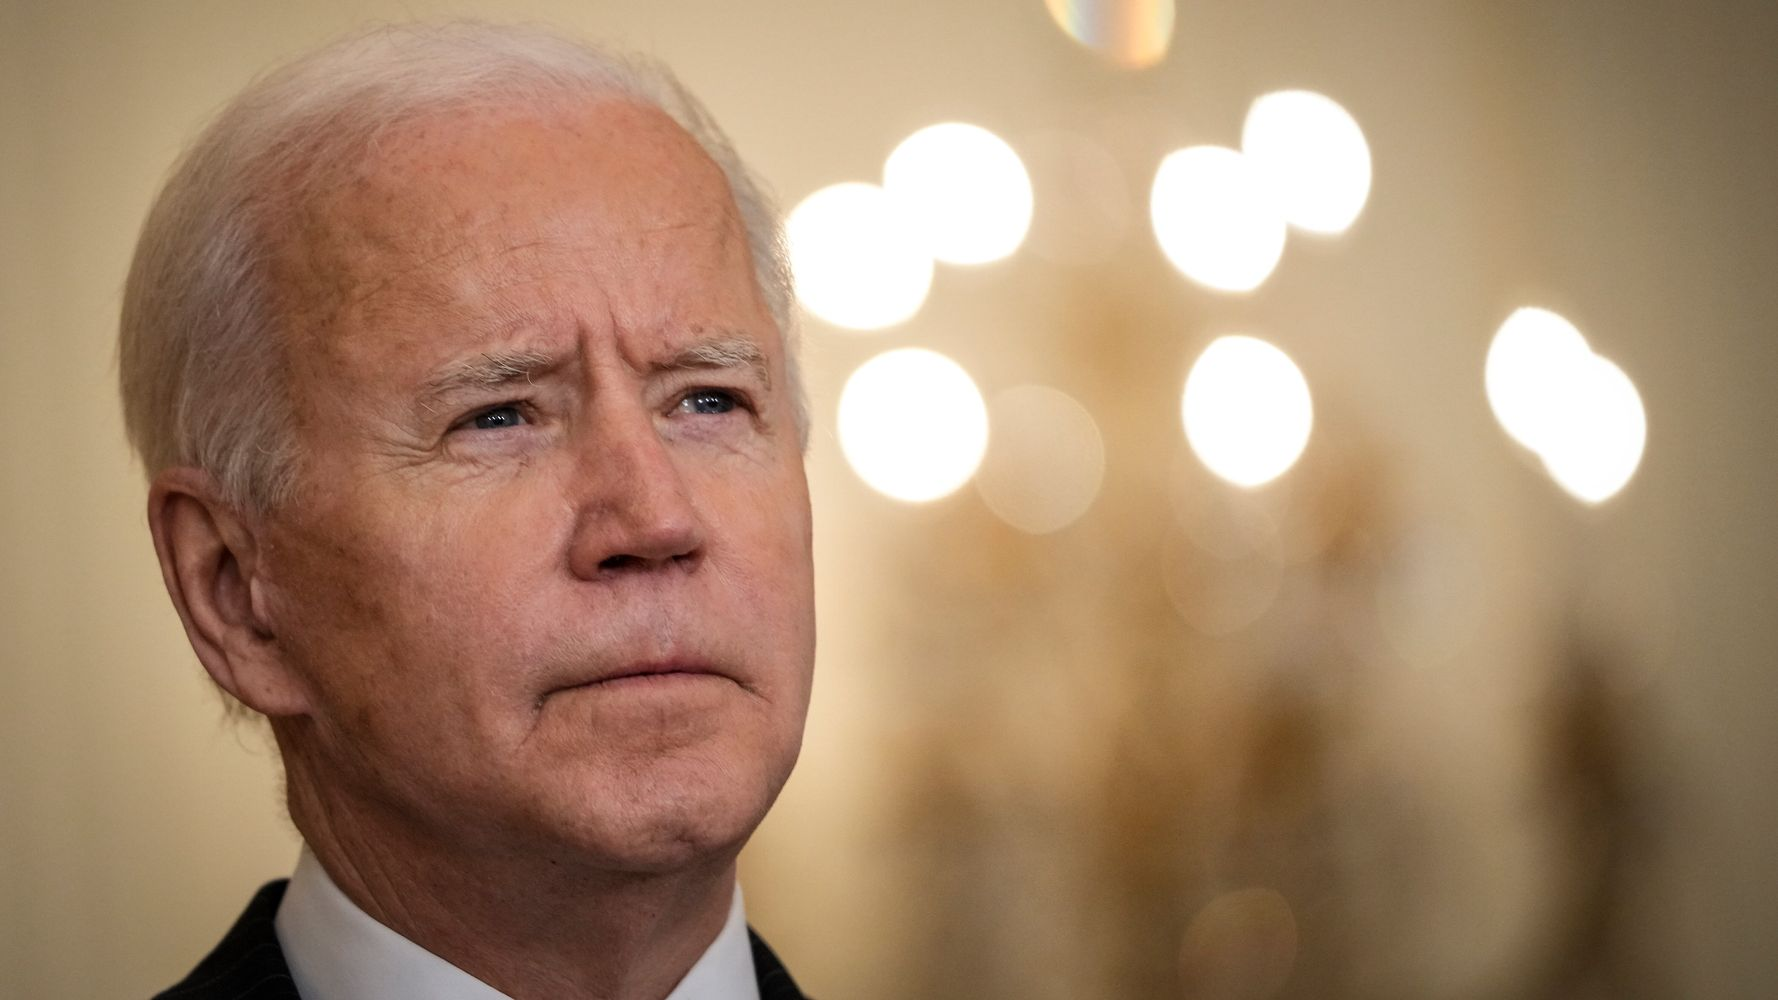 The Georgia GOP Is Begging Biden To Act On Battery Plant, While Dems Stay Silent